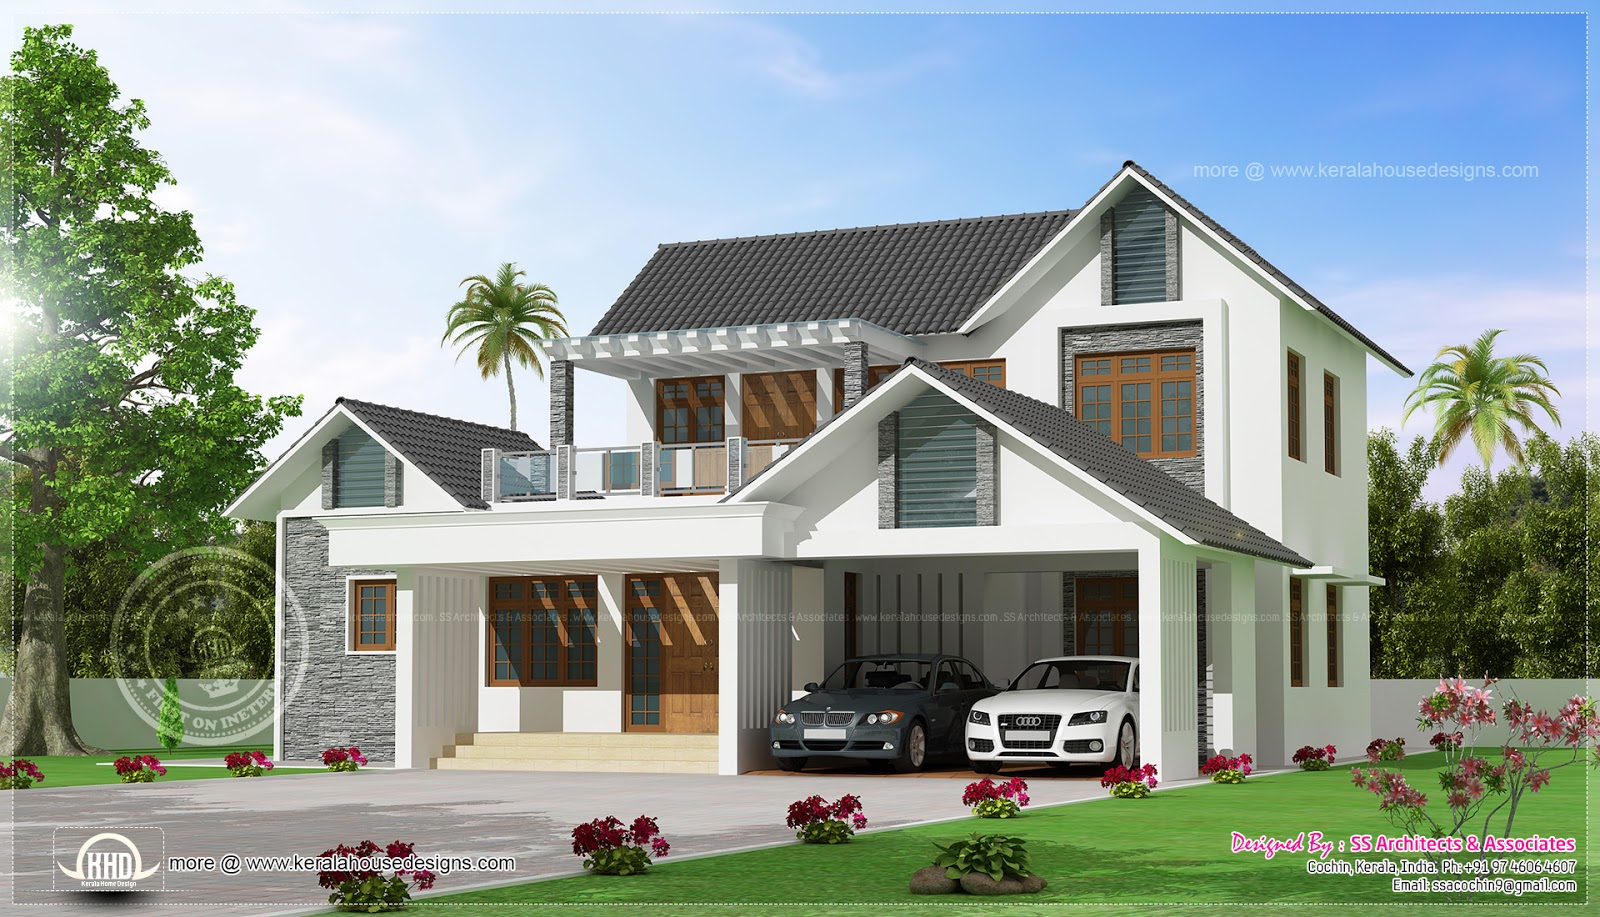 Awesome modern villa exterior elevation house design plans for Awesome house plans